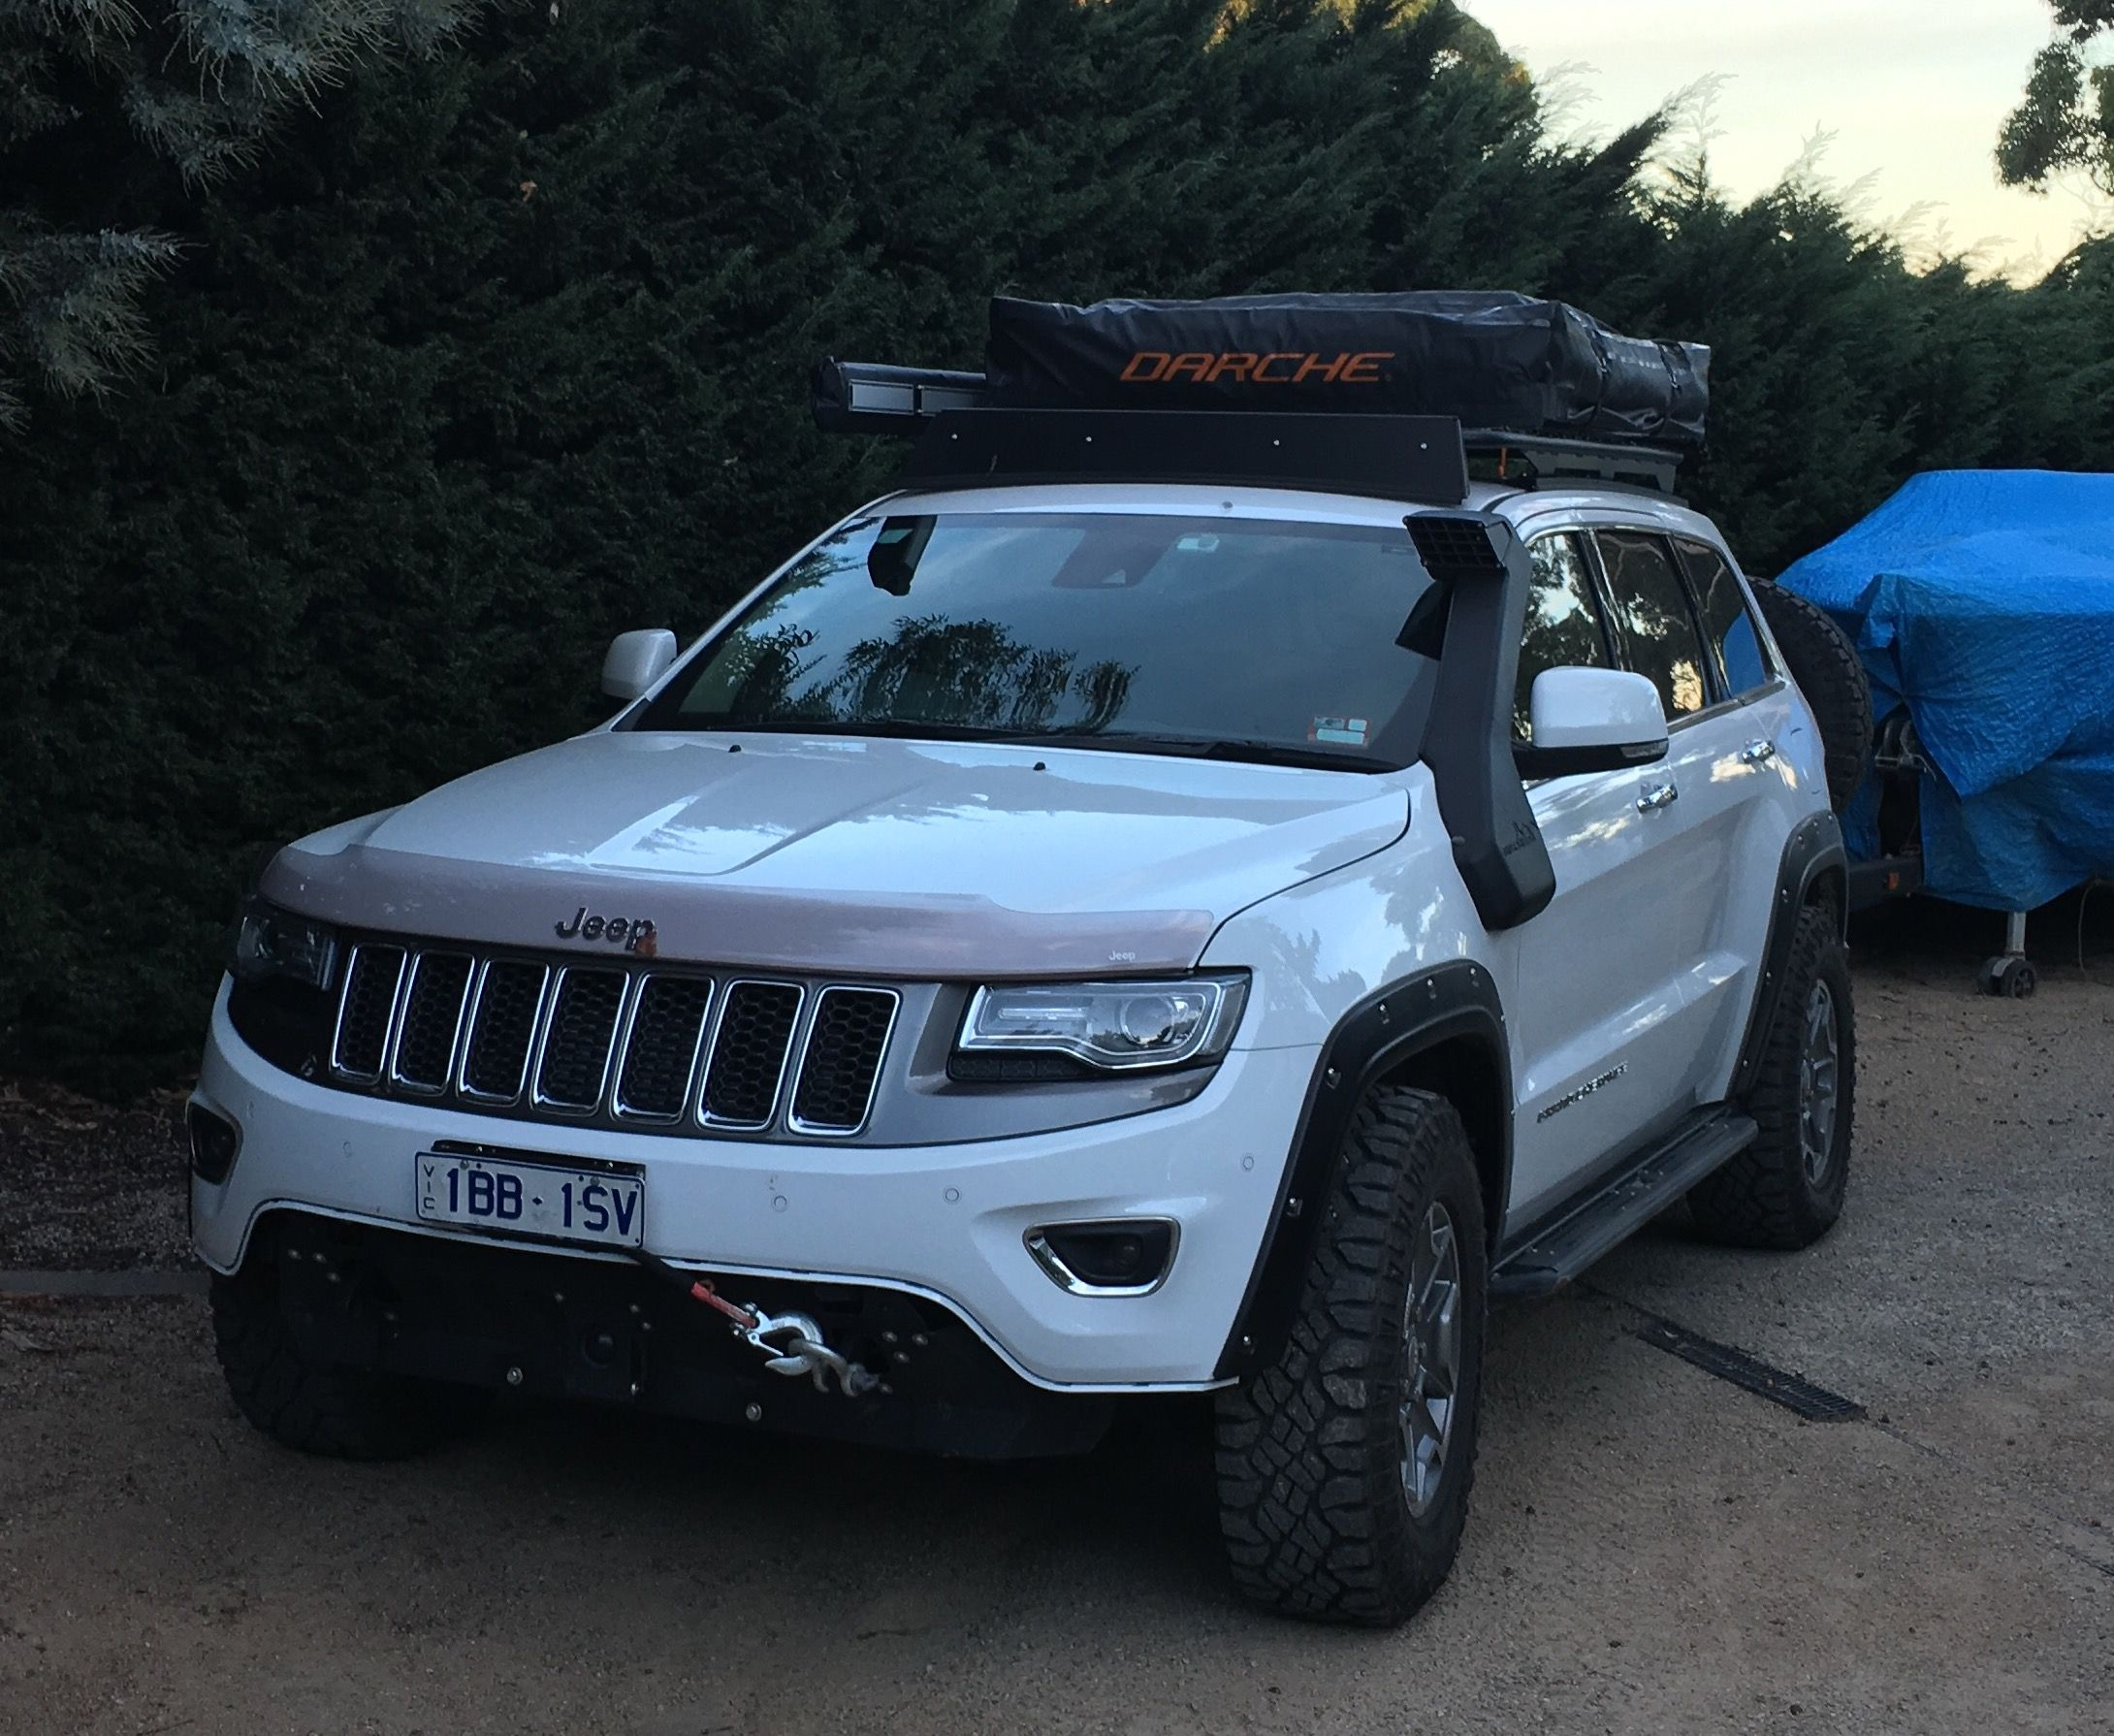 Pin By Rentmyhusband On Jeeps Jeep Trailhawk Jeep Wk Jeep Camping